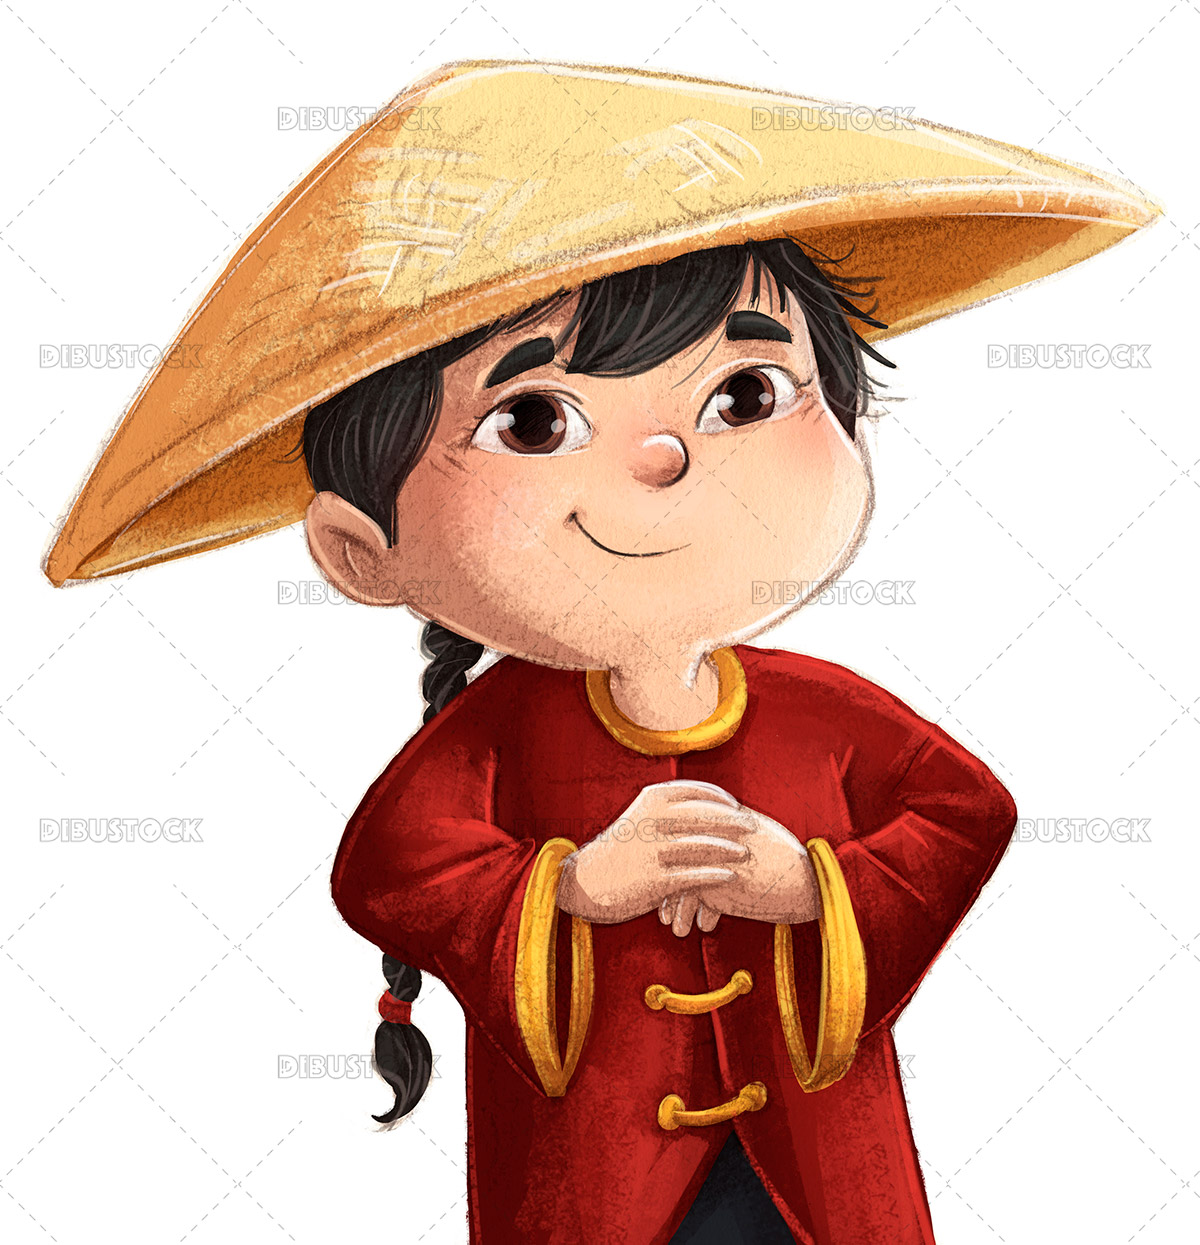 Illustration of traditional chinese boy with hat